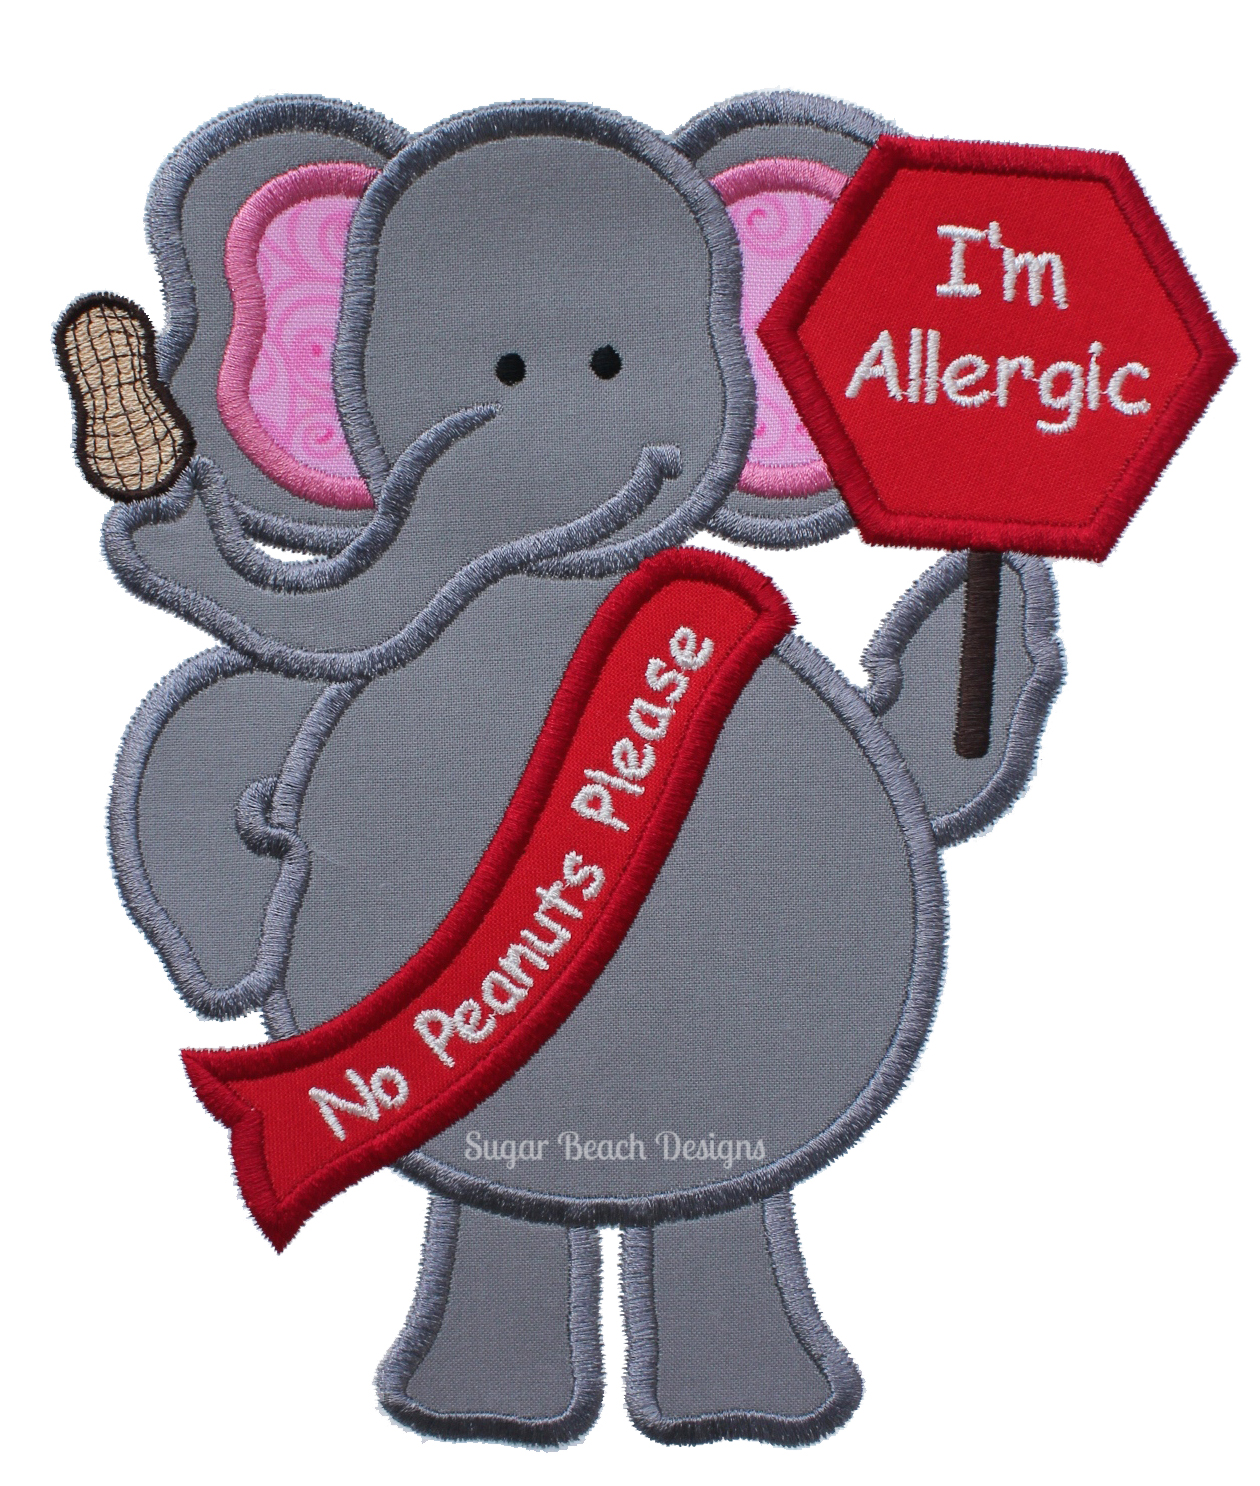 Elephant Allergic to Peanuts-Peanuts Elephant Allergy Health